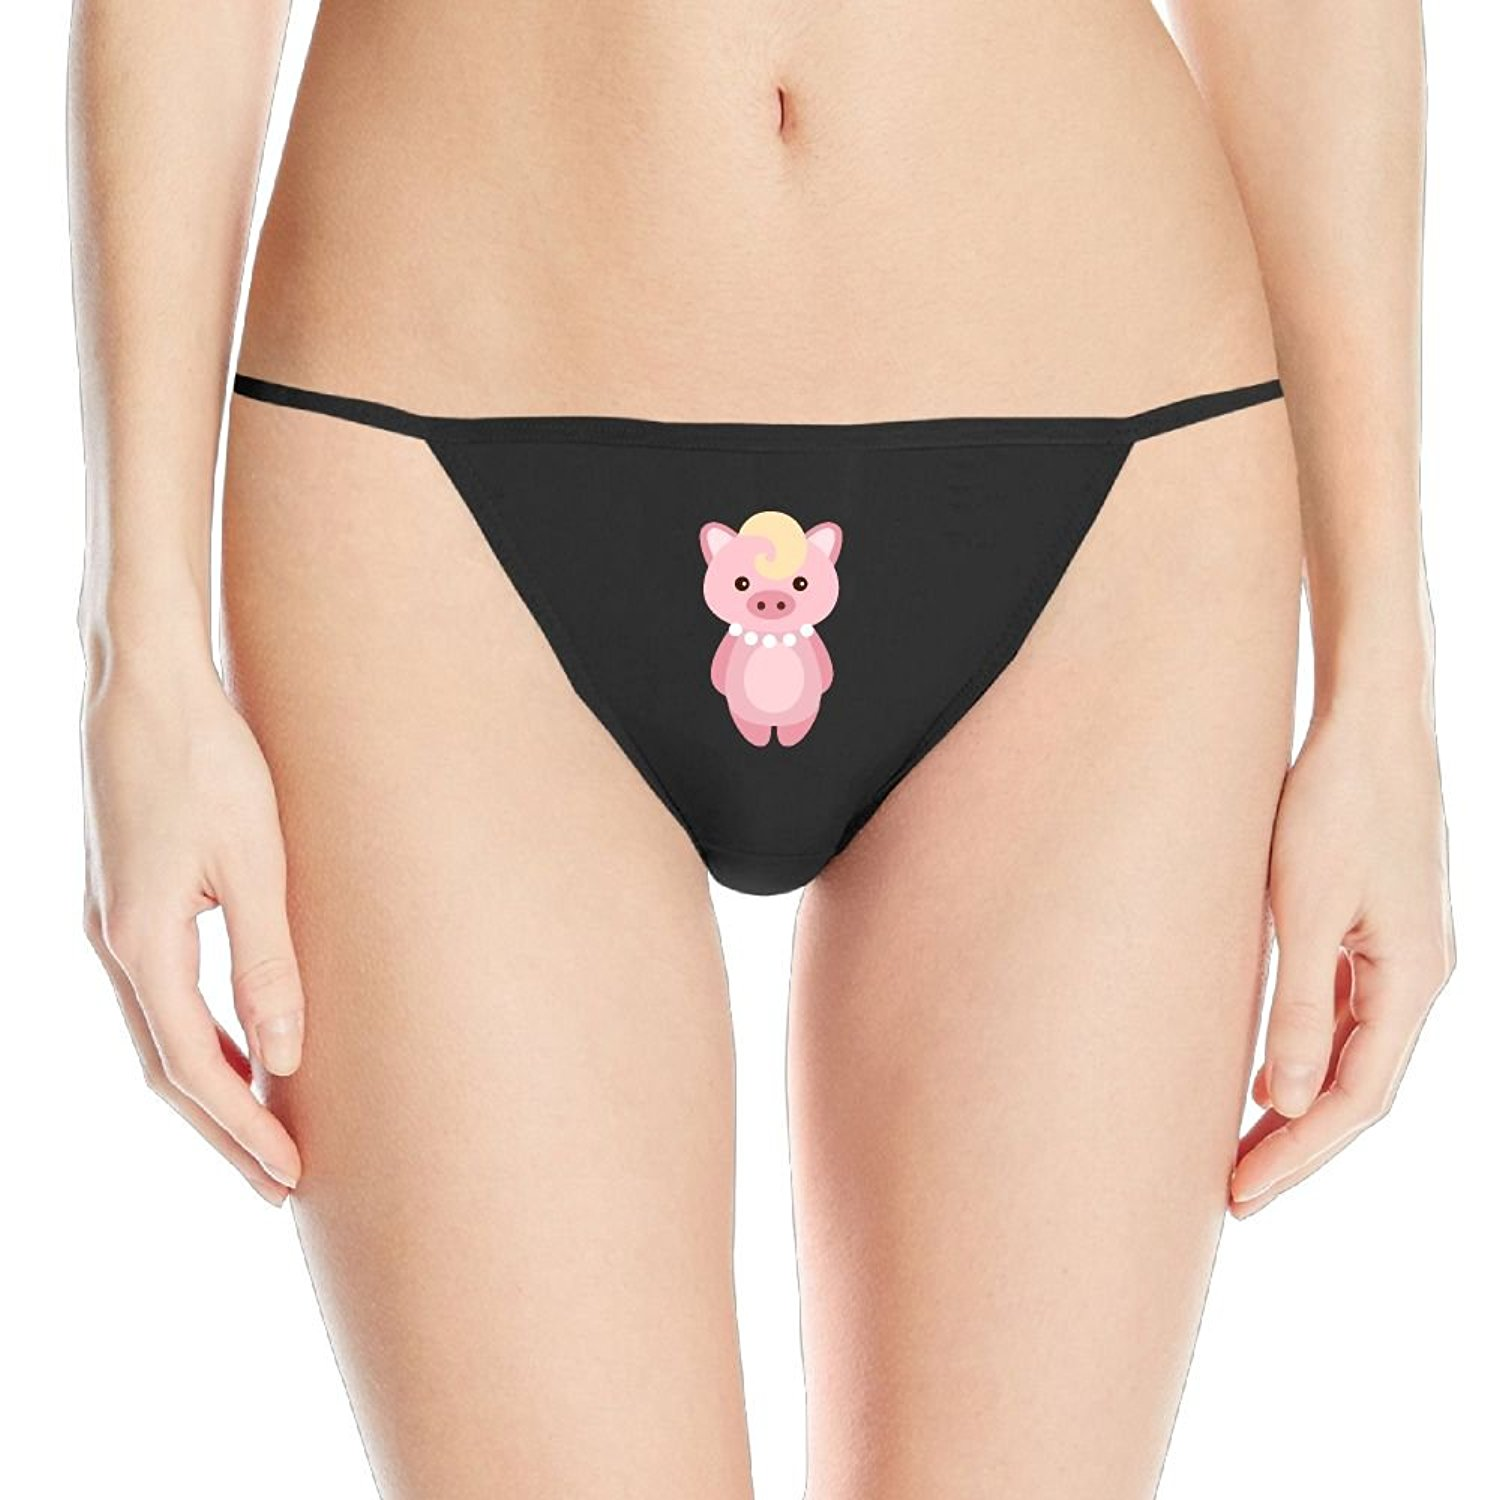 feb0efa4a Get Quotations · Pink Pig Women s T-String Lingerie Sexy Tangas Panties  Thong T-Back For Women